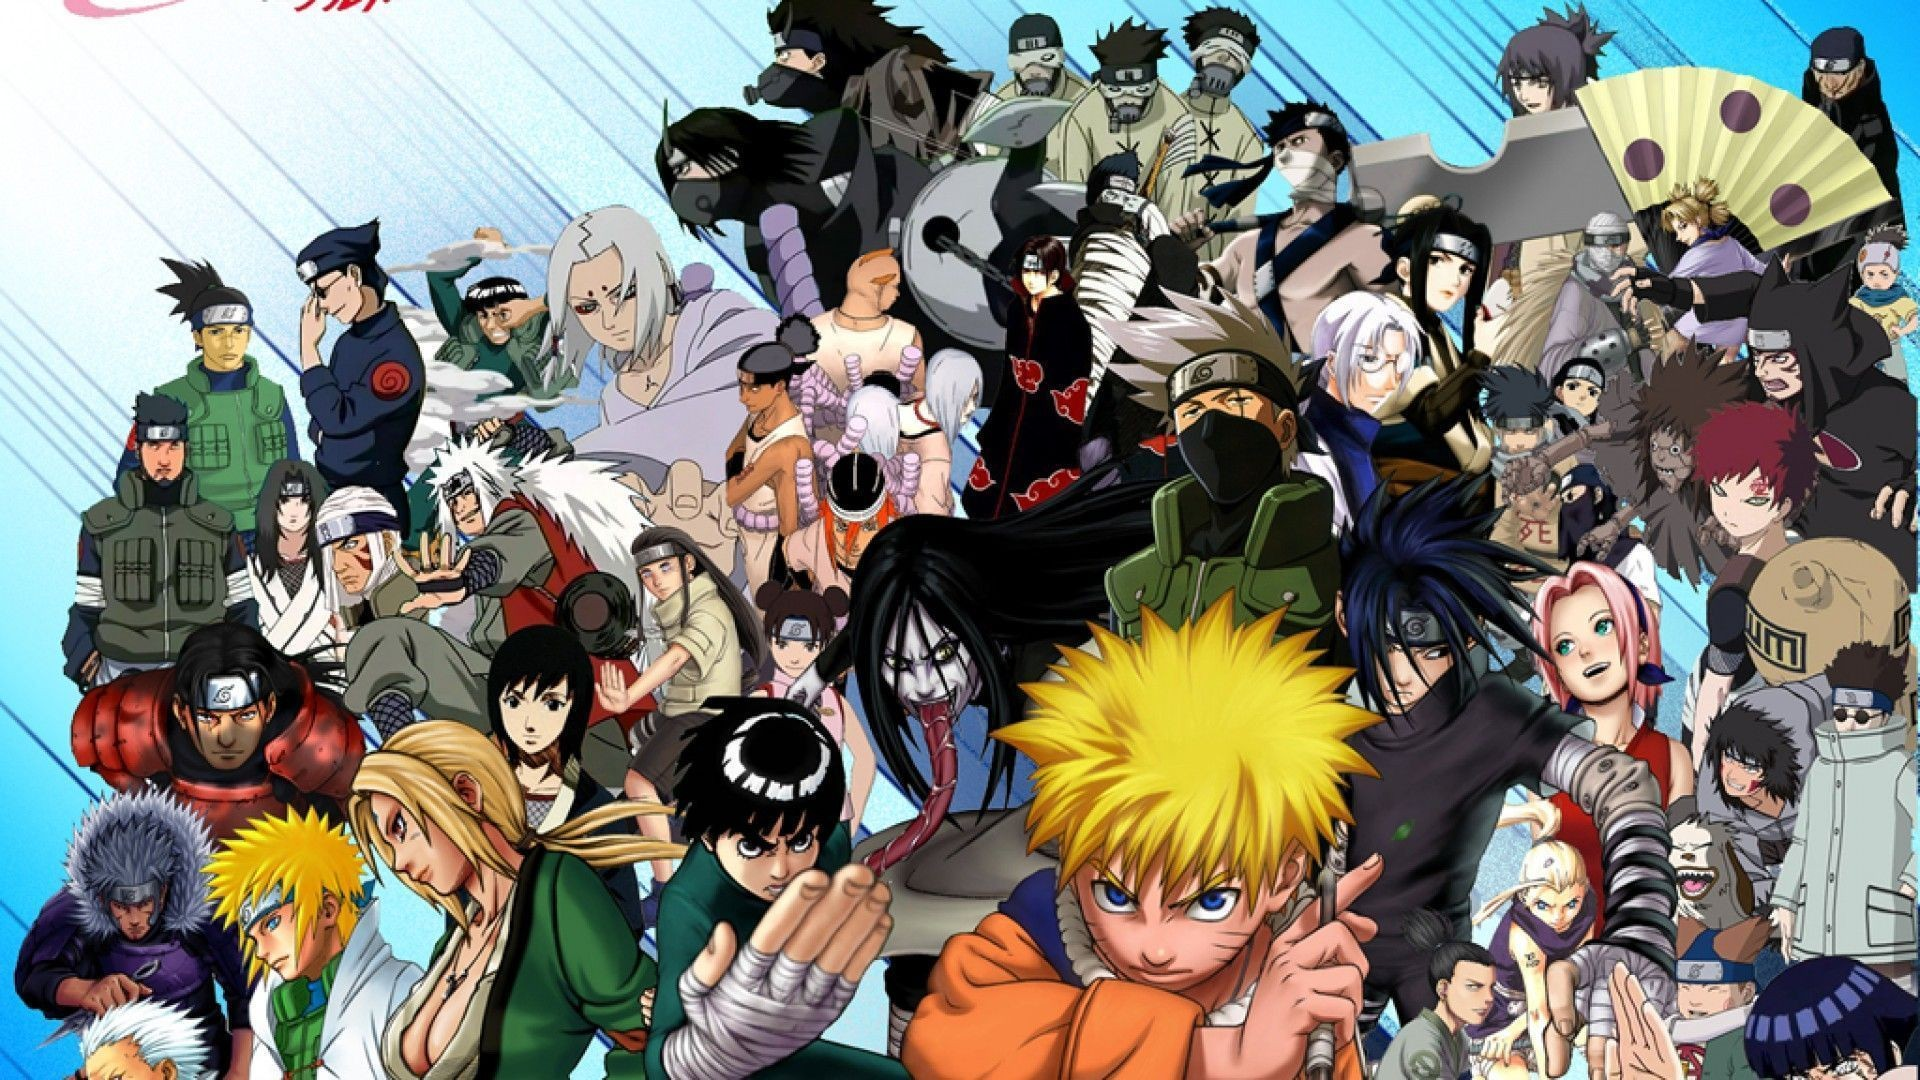 Great Wallpaper Naruto Tablet - naruto-wallpaper-x-x-for-android-tablet-PIC-MCH011484  Graphic.jpg